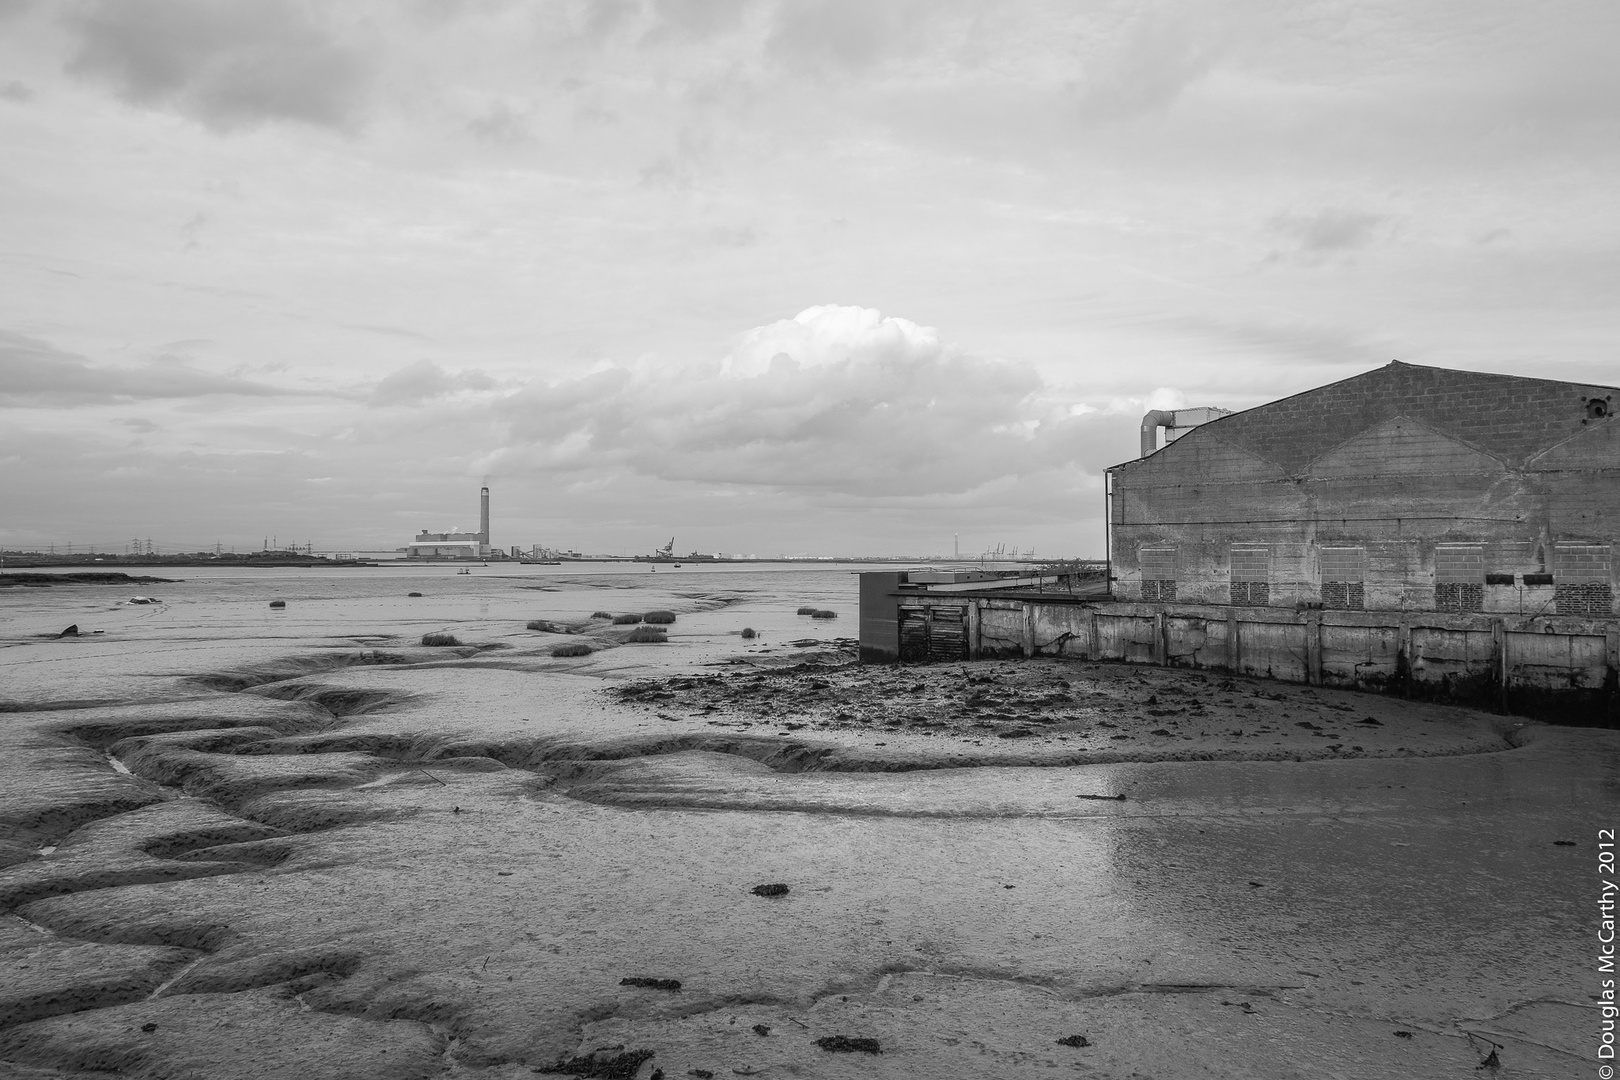 Wharf at Owens Way, Gillingham Marsh